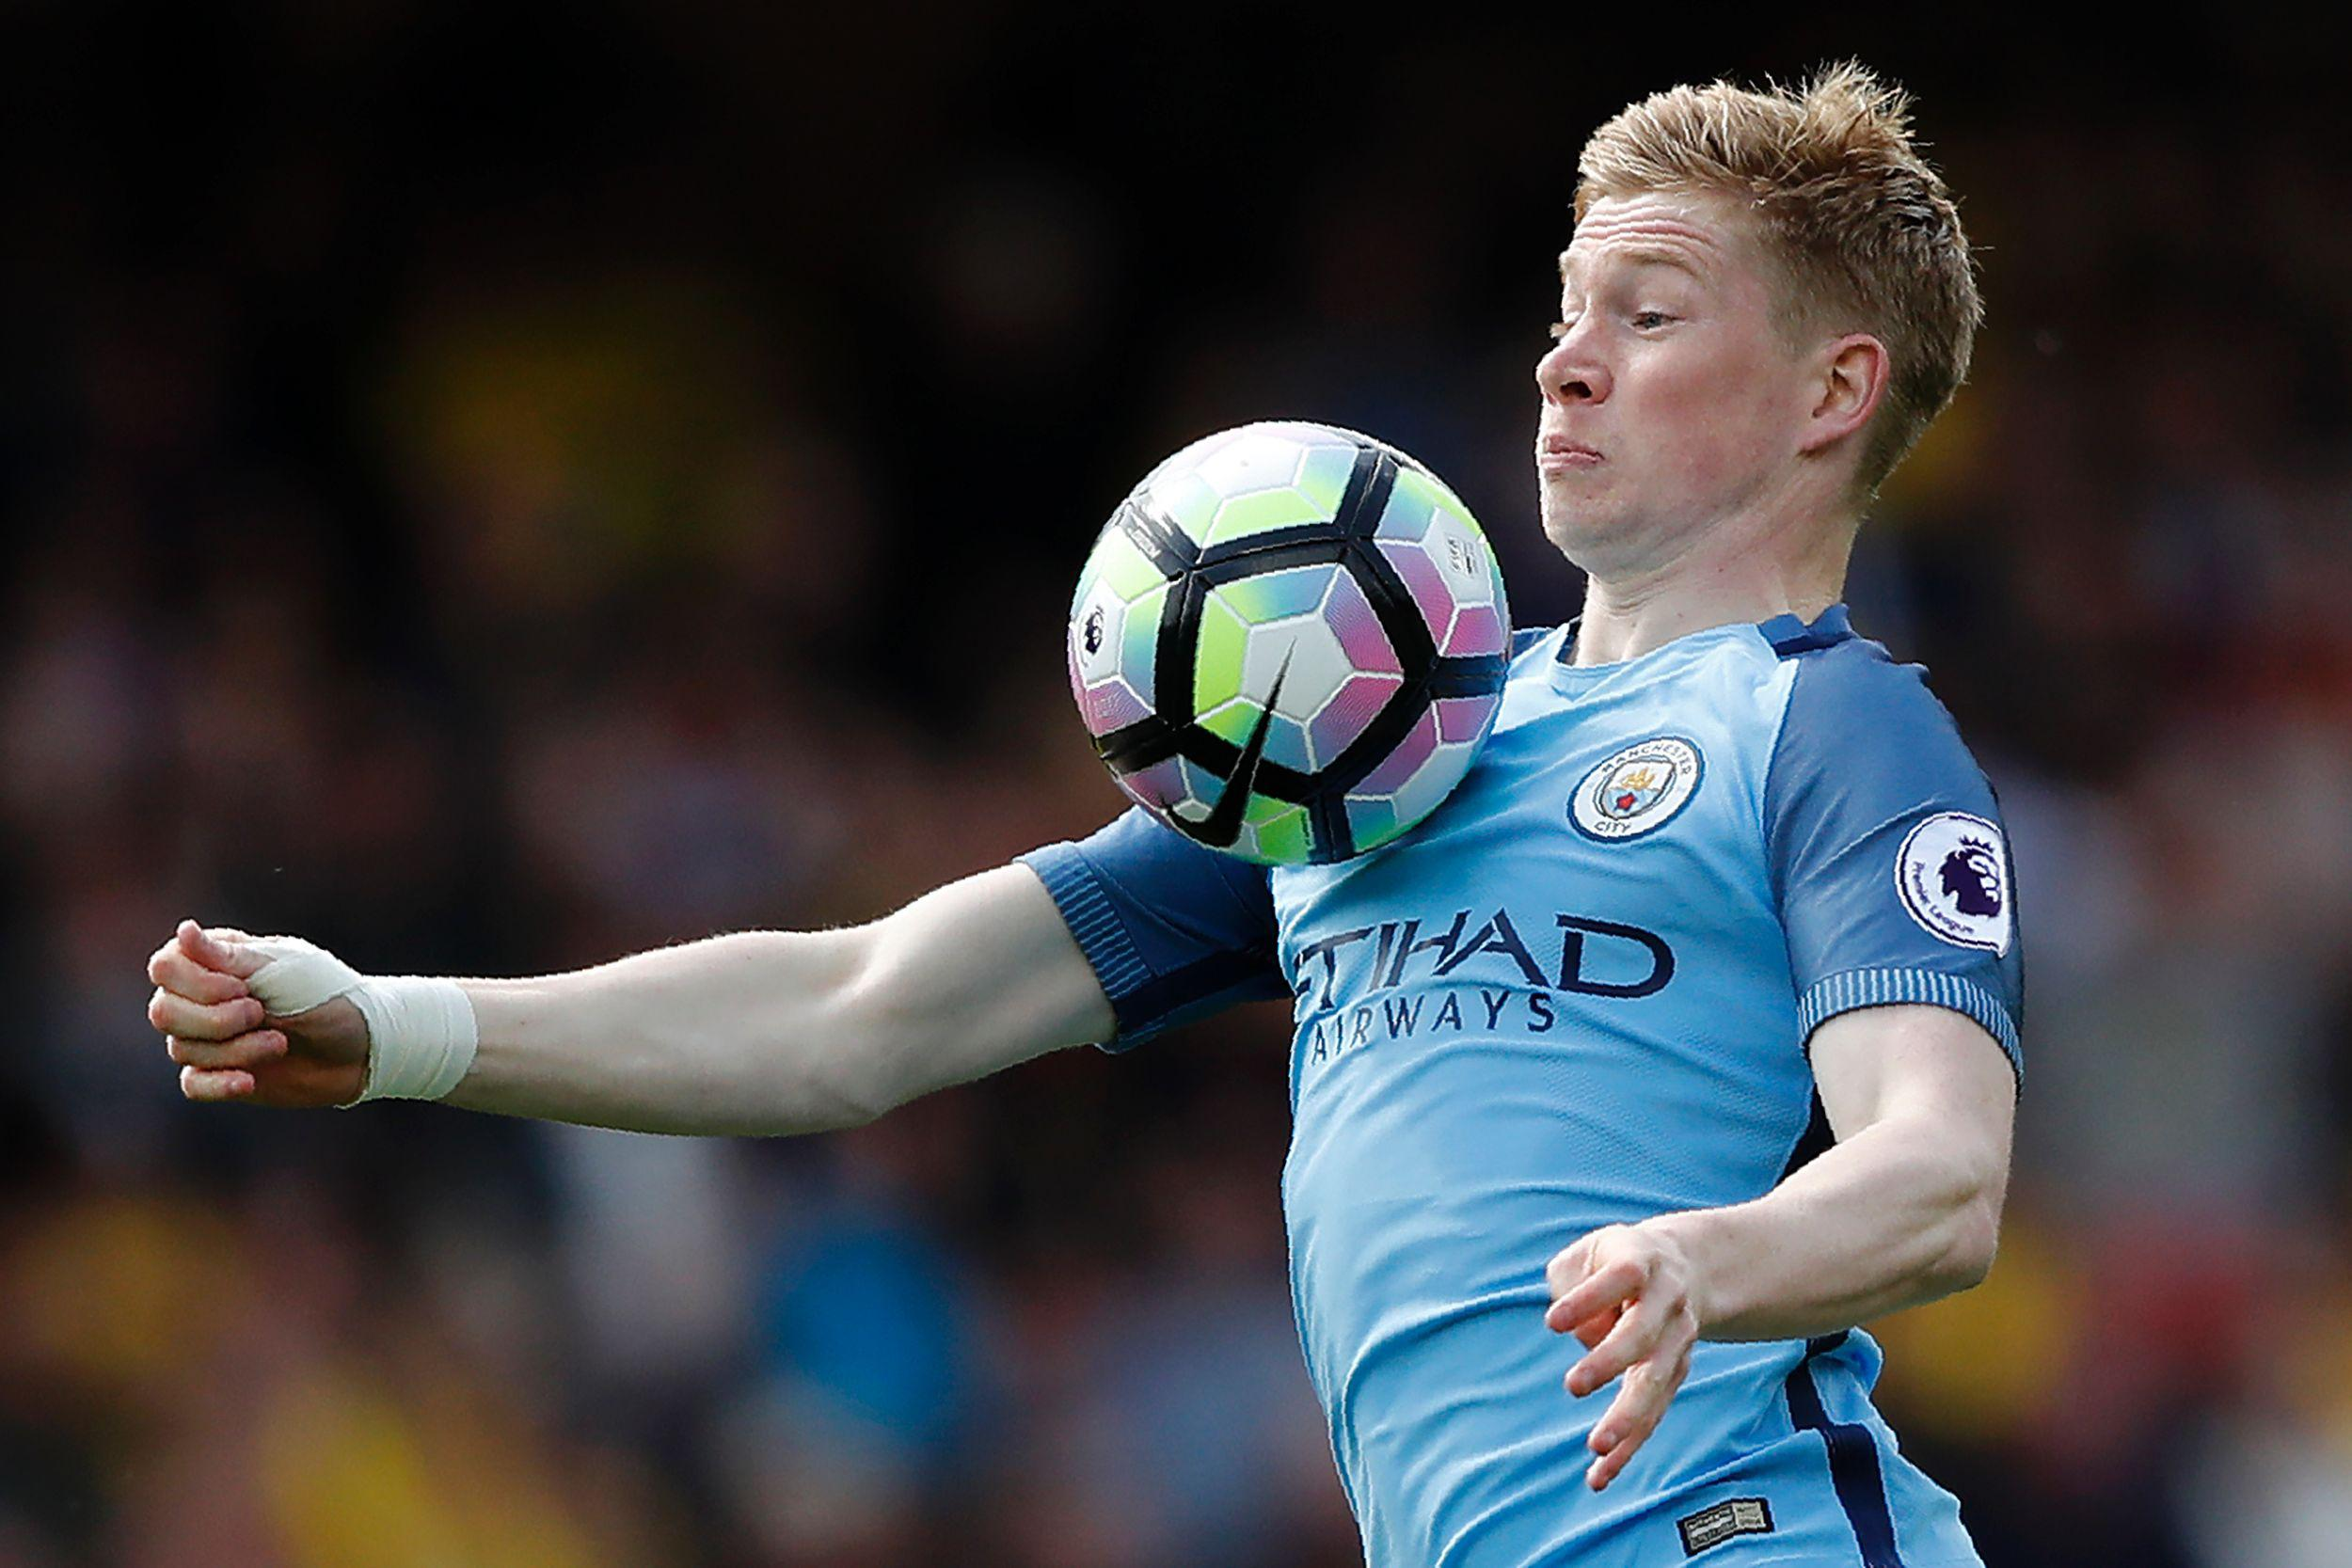 Kevin de Bruyne celebrated tying the knot in style